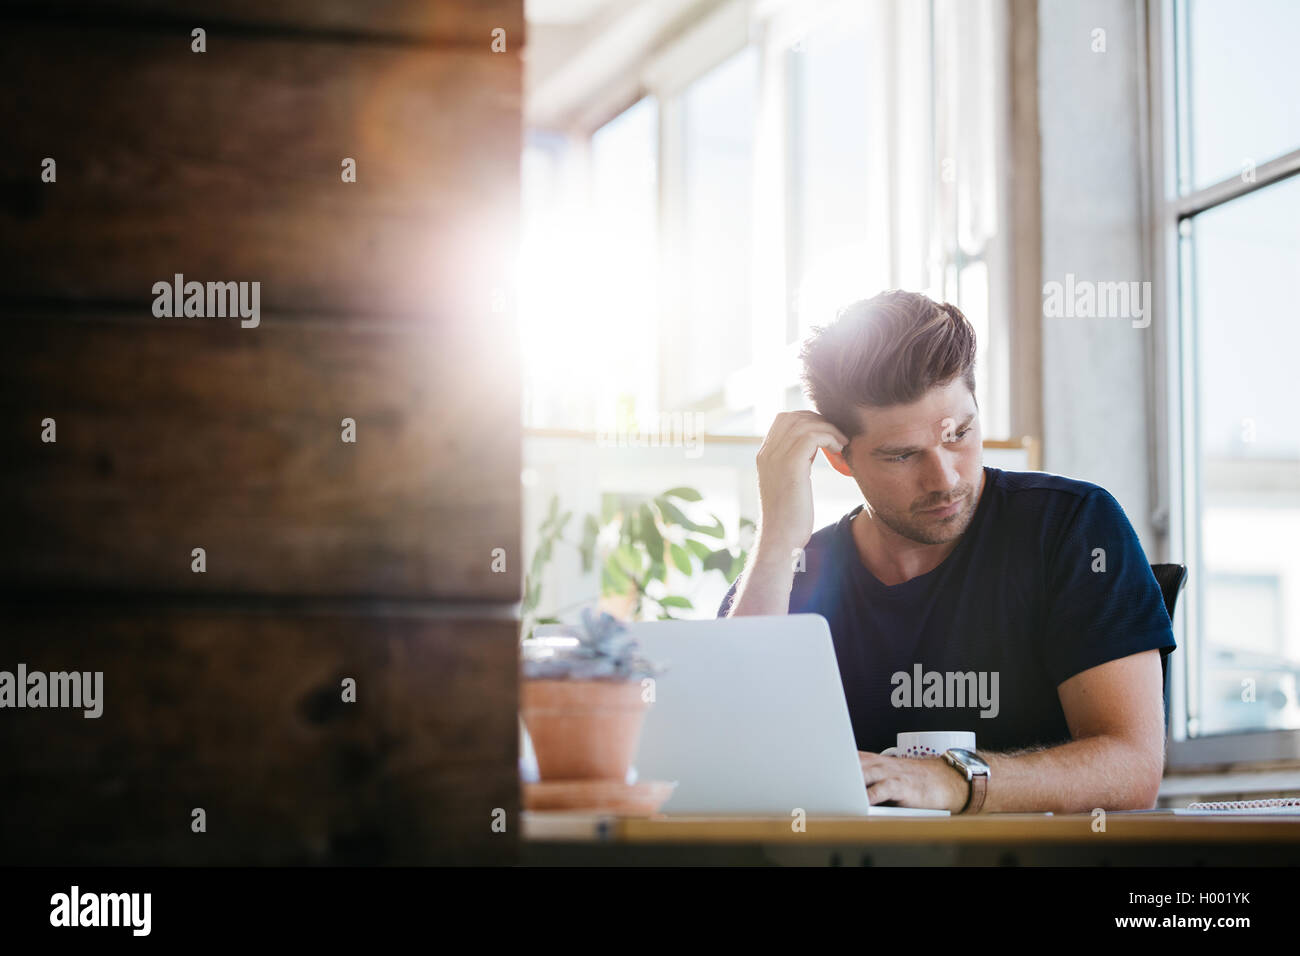 Young business man with problems and stress in the office. Man at his desk with laptop and looking away thinking. - Stock Image